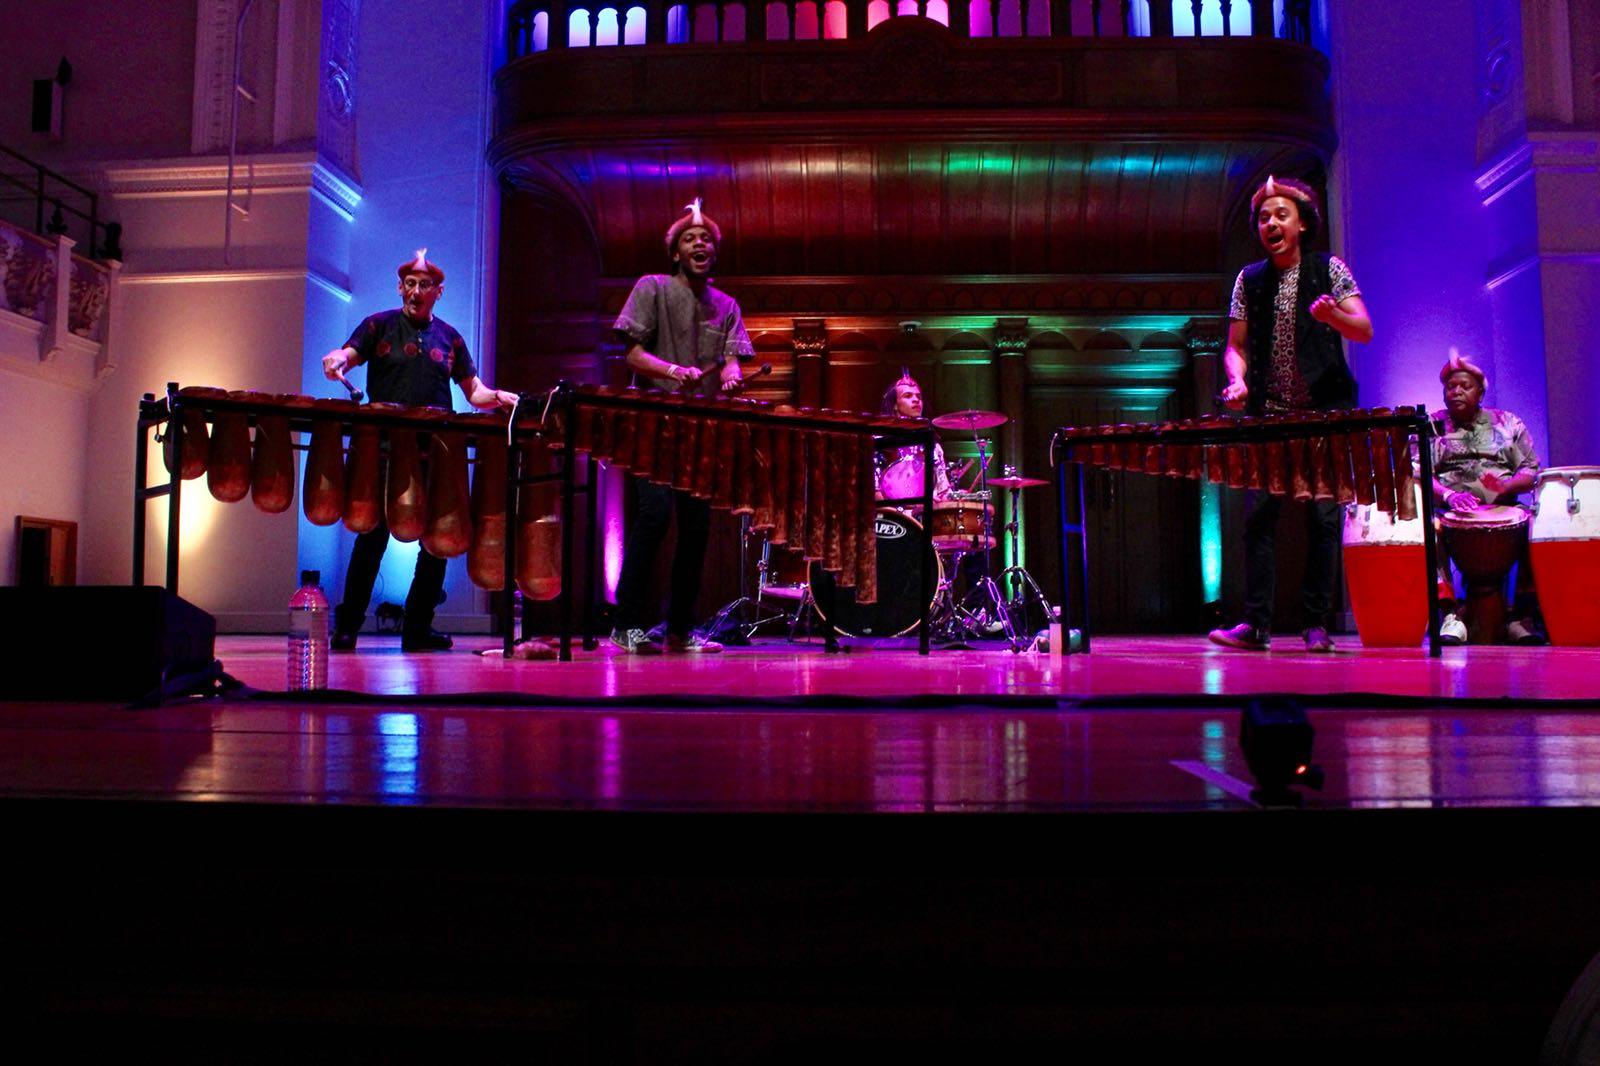 Cadogan Hall London - Panafrik - Otto Gumaelius & Taste of Southern Africa Marimba Band 1.JPG